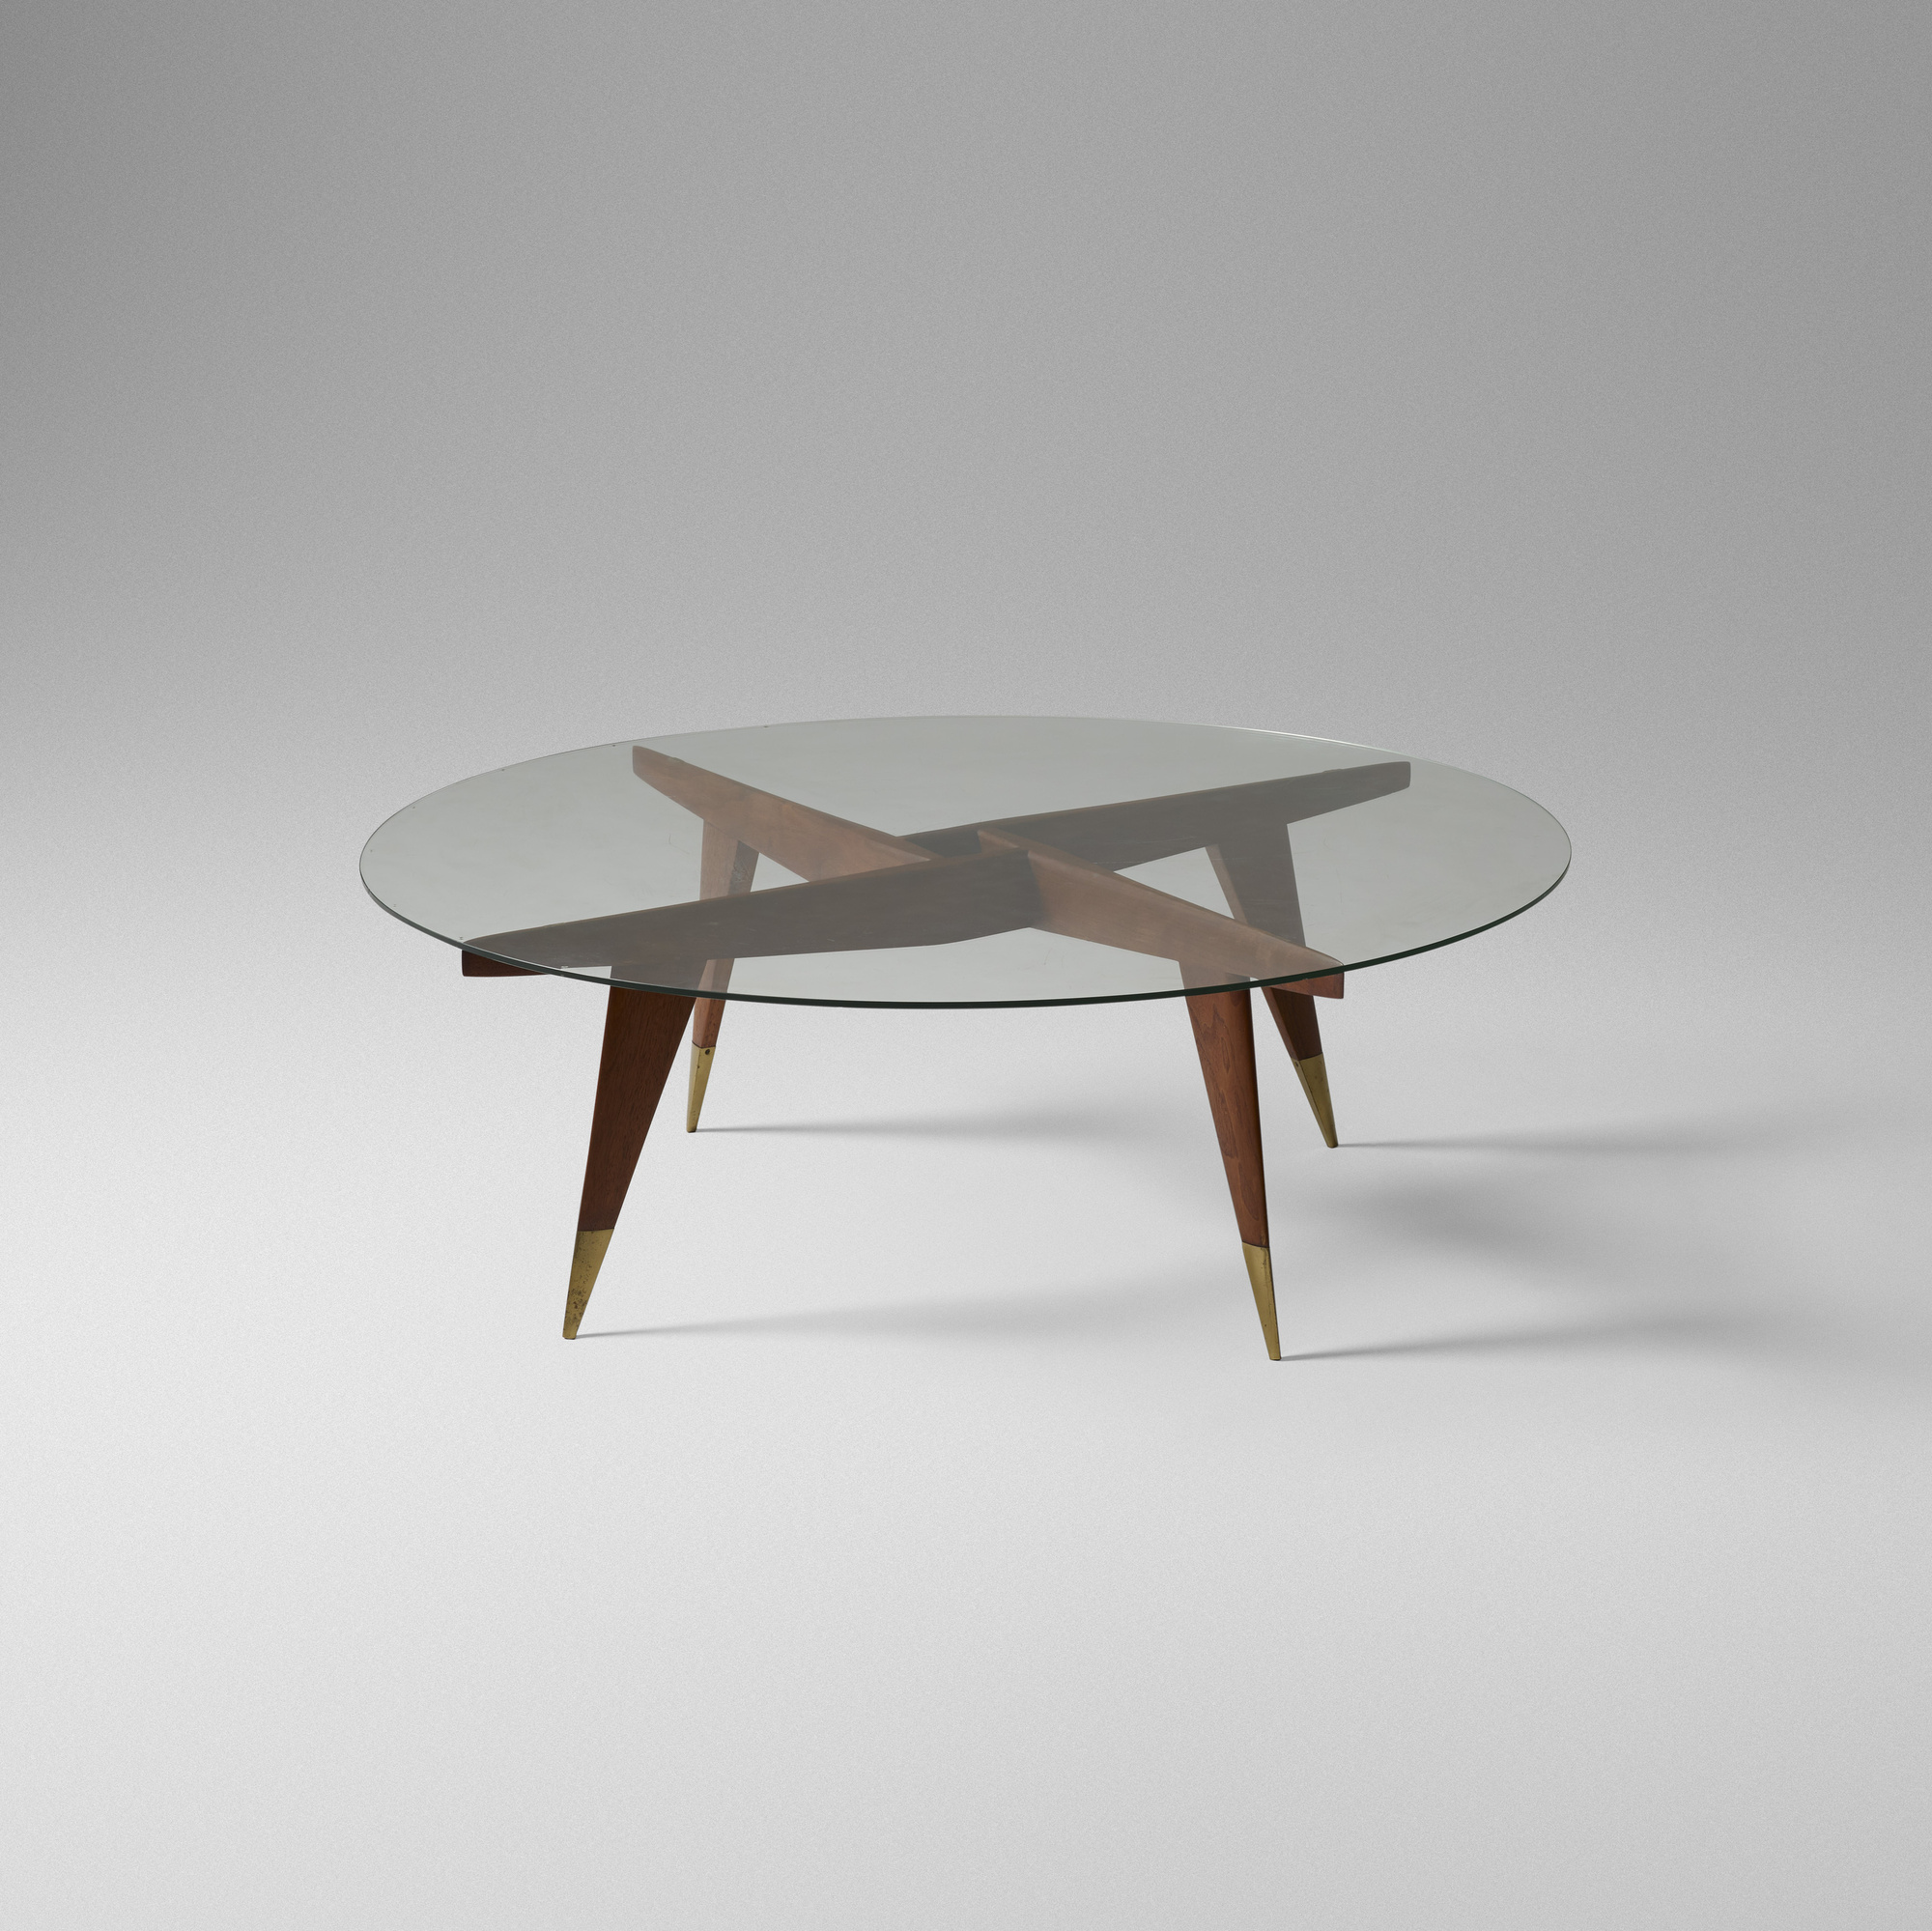 173 Gio Ponti coffee table Design 14 December 2017